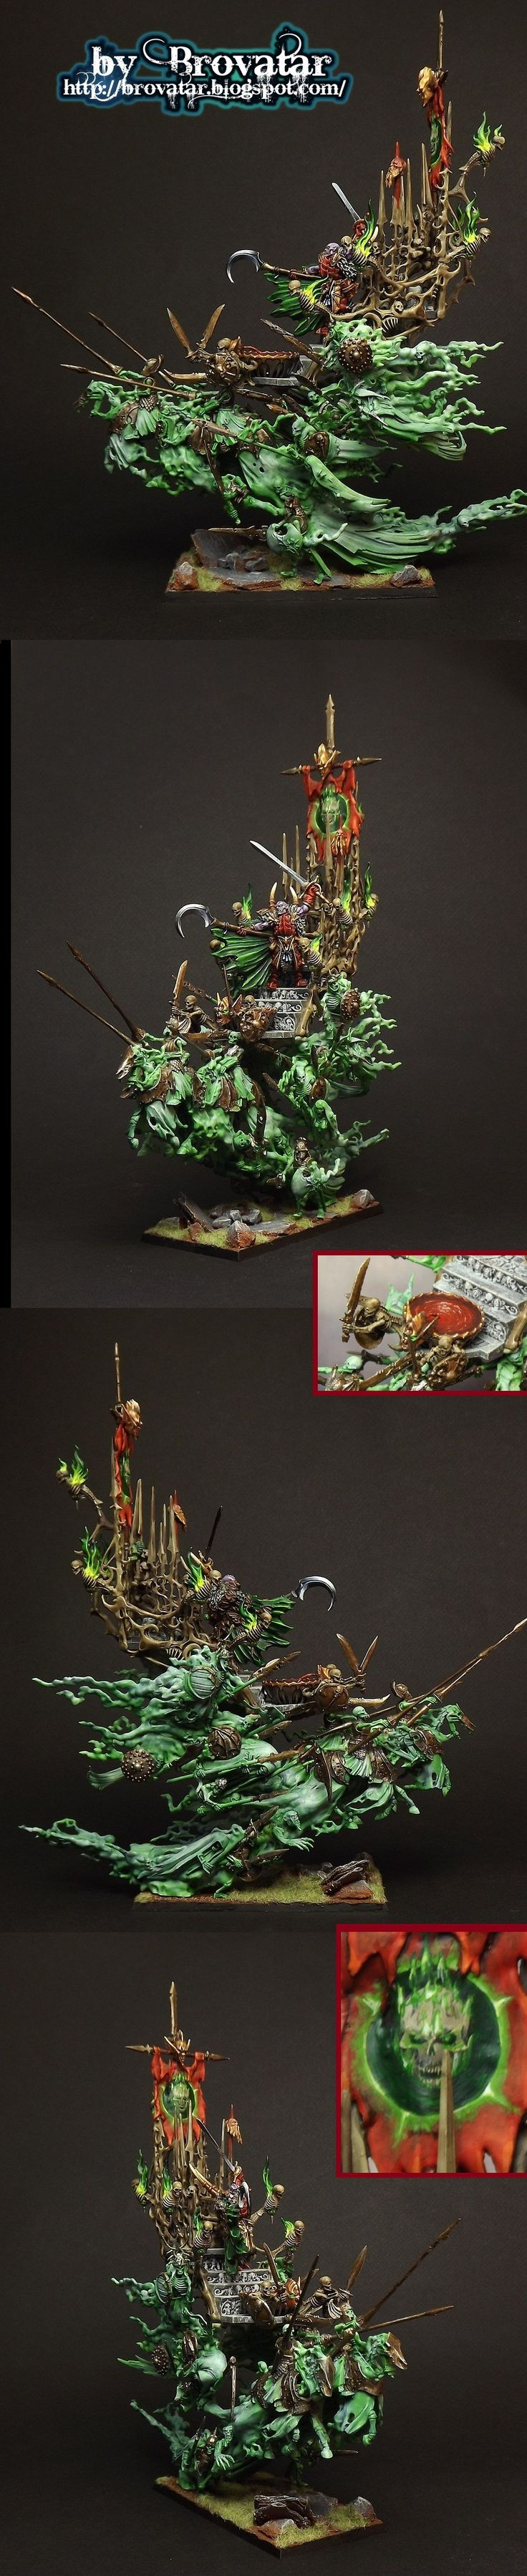 vampirecounts Coven Throne, Warhammer Age of Sigmar Grand Alliance Death Undead